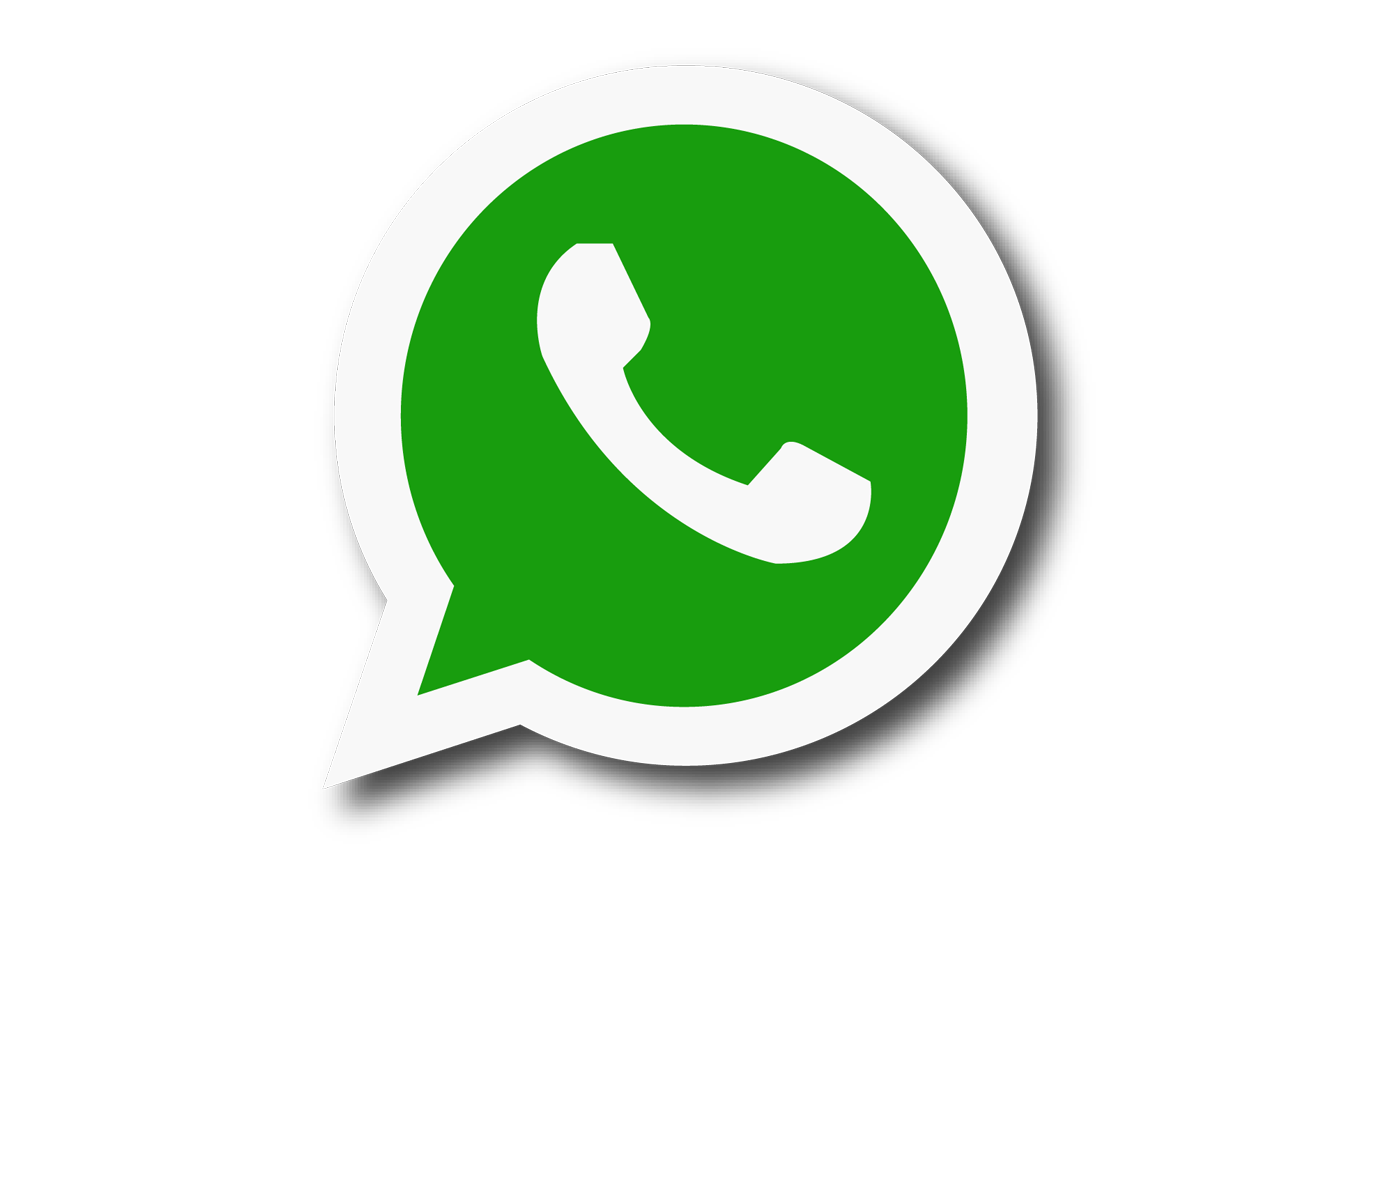 Whatsapp Simbolo Png 3 Png Image